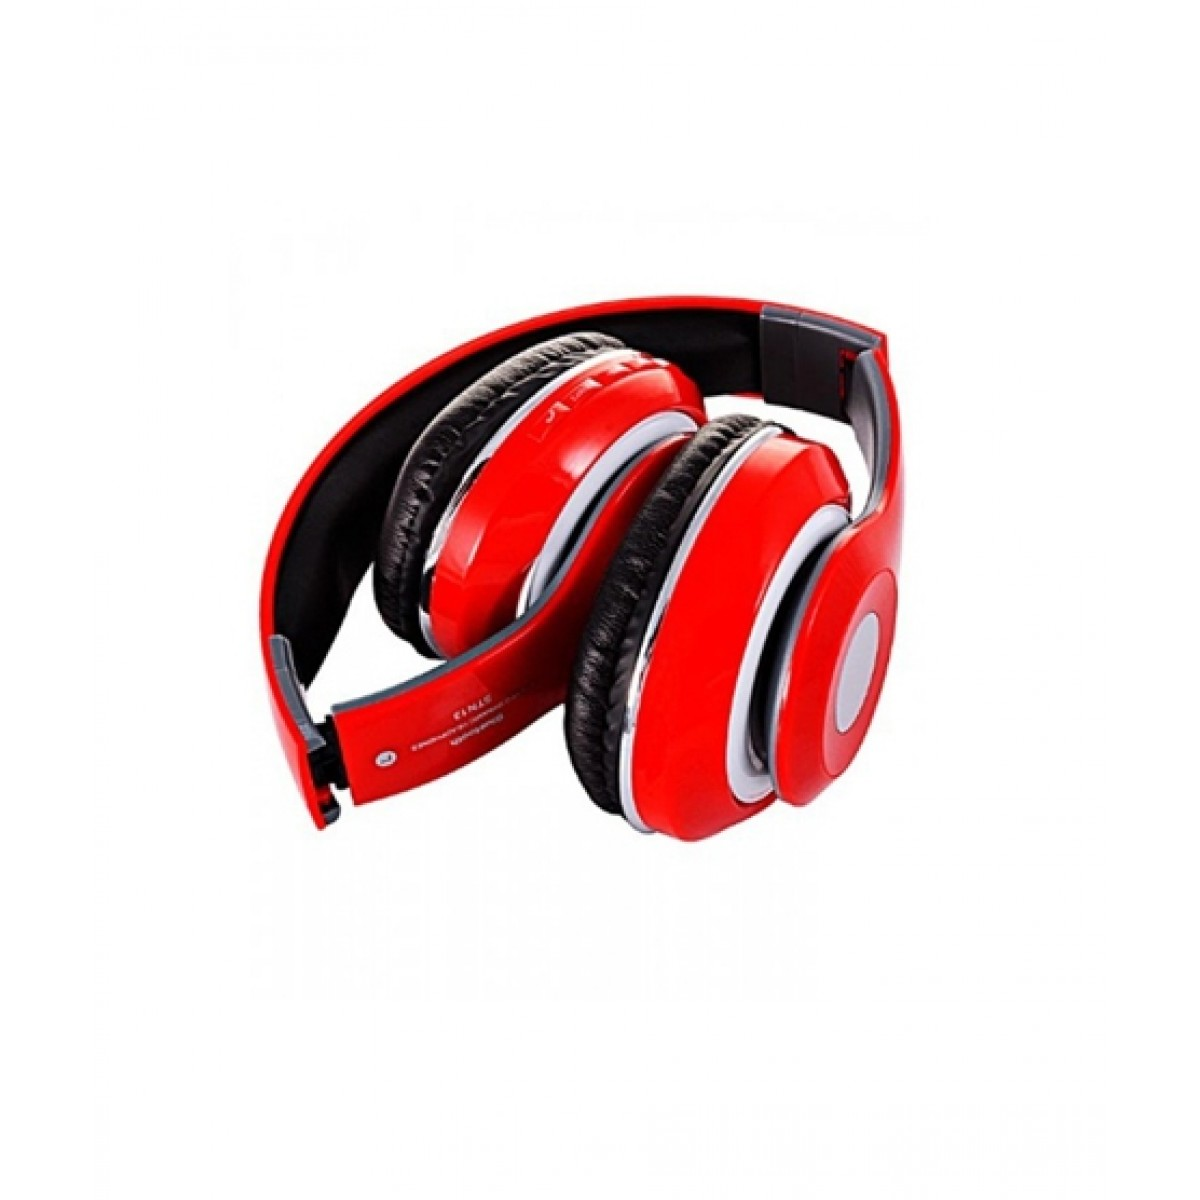 Wireless Bluetooth Headphone Stn 13 Price In Pakistan Buy Unique Brands Wireless Bluetooth Headphone Red Stn 13 Ishopping